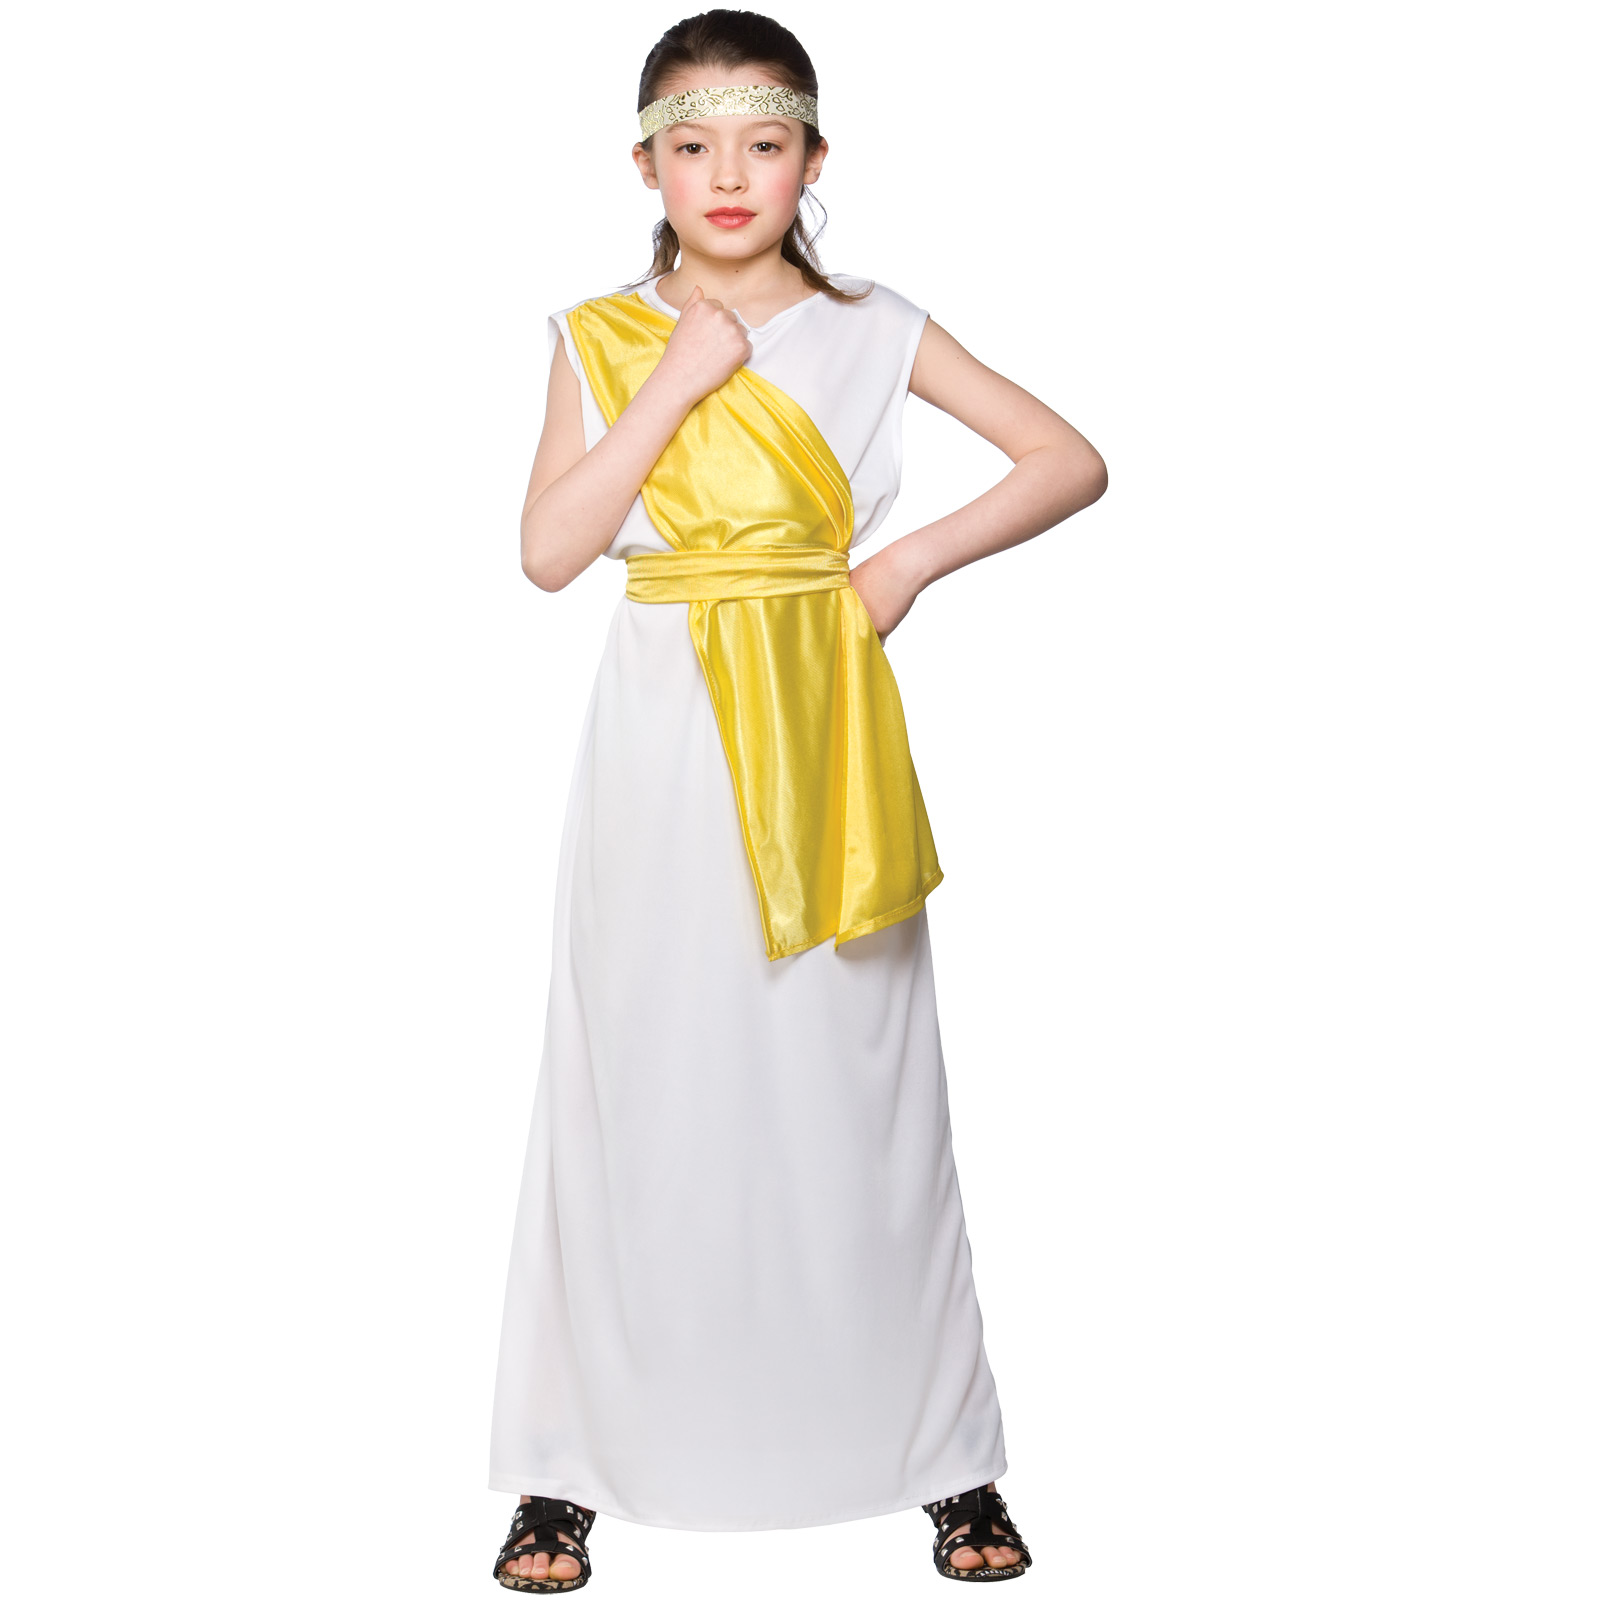 Ancient Egyptian Clothing For Kids Ancient greek girl costume for